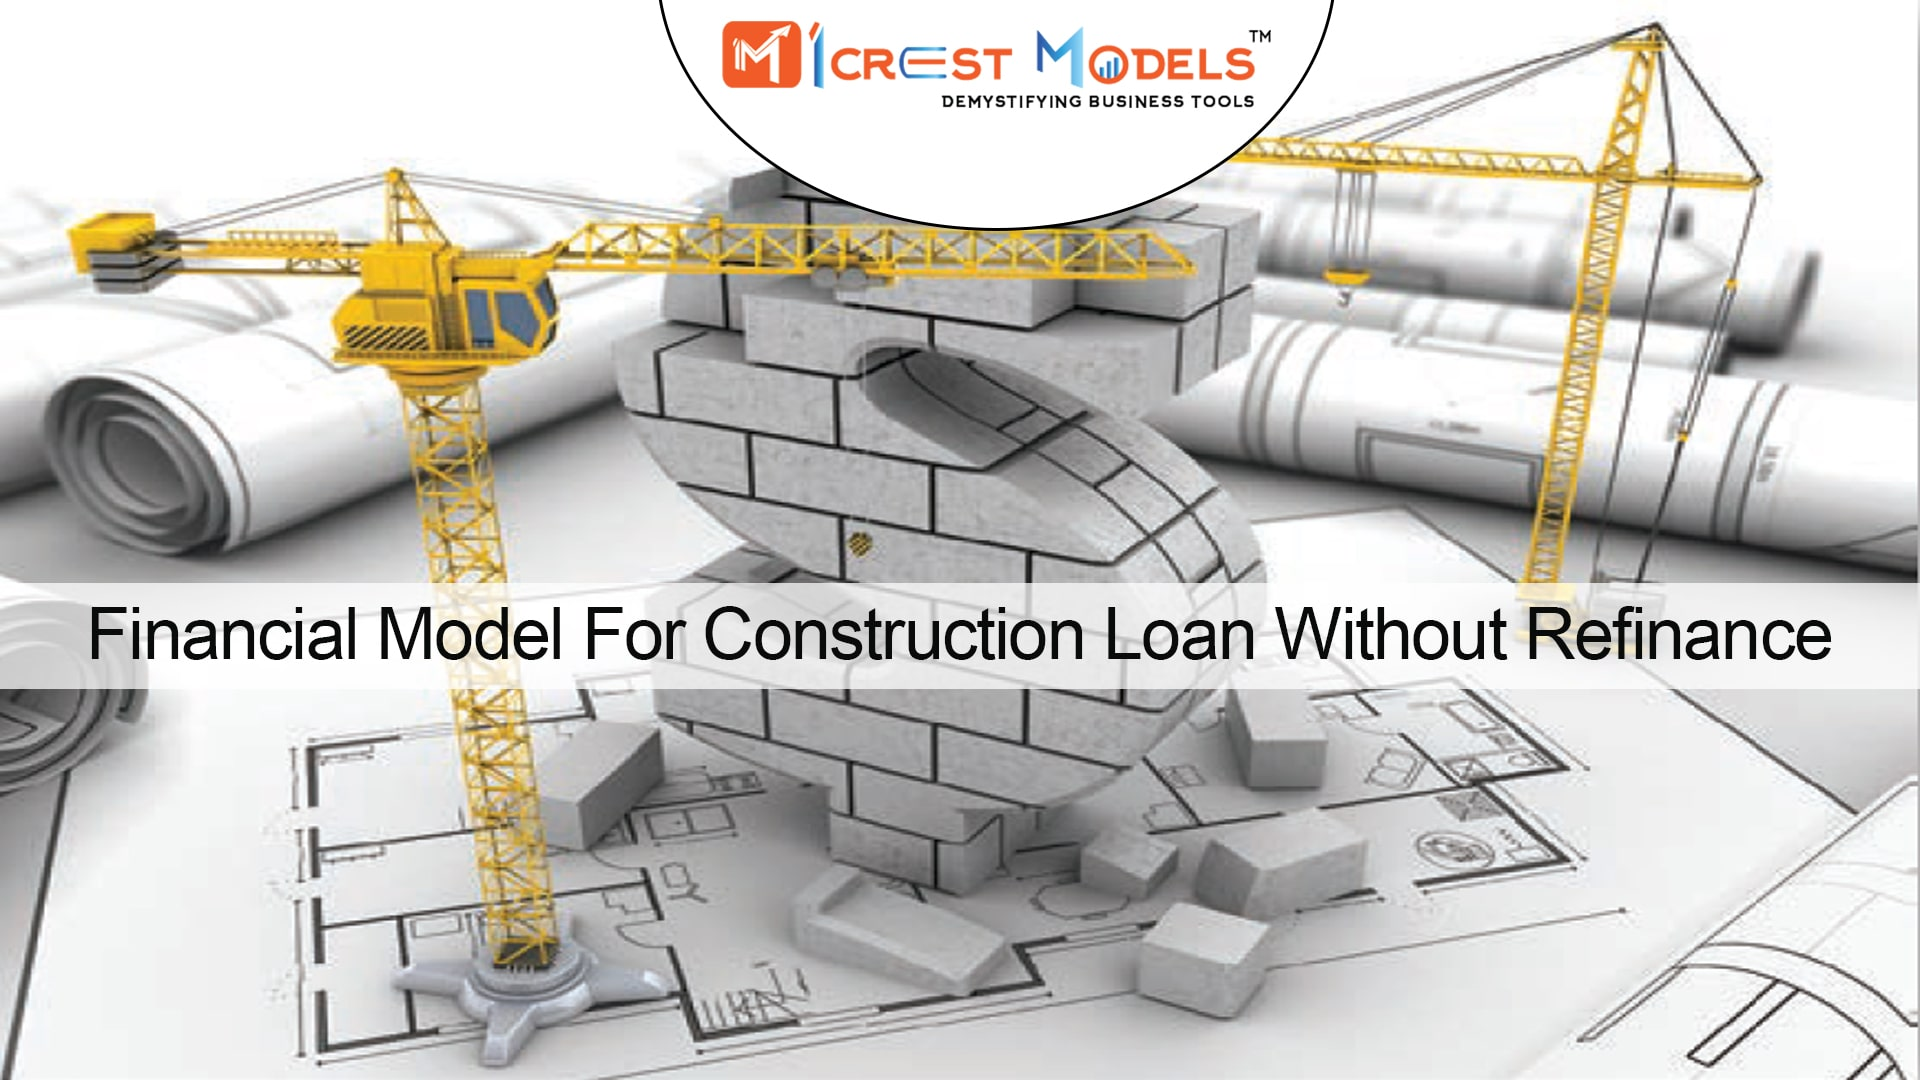 Financial Model For Construction Loan Without Refinance